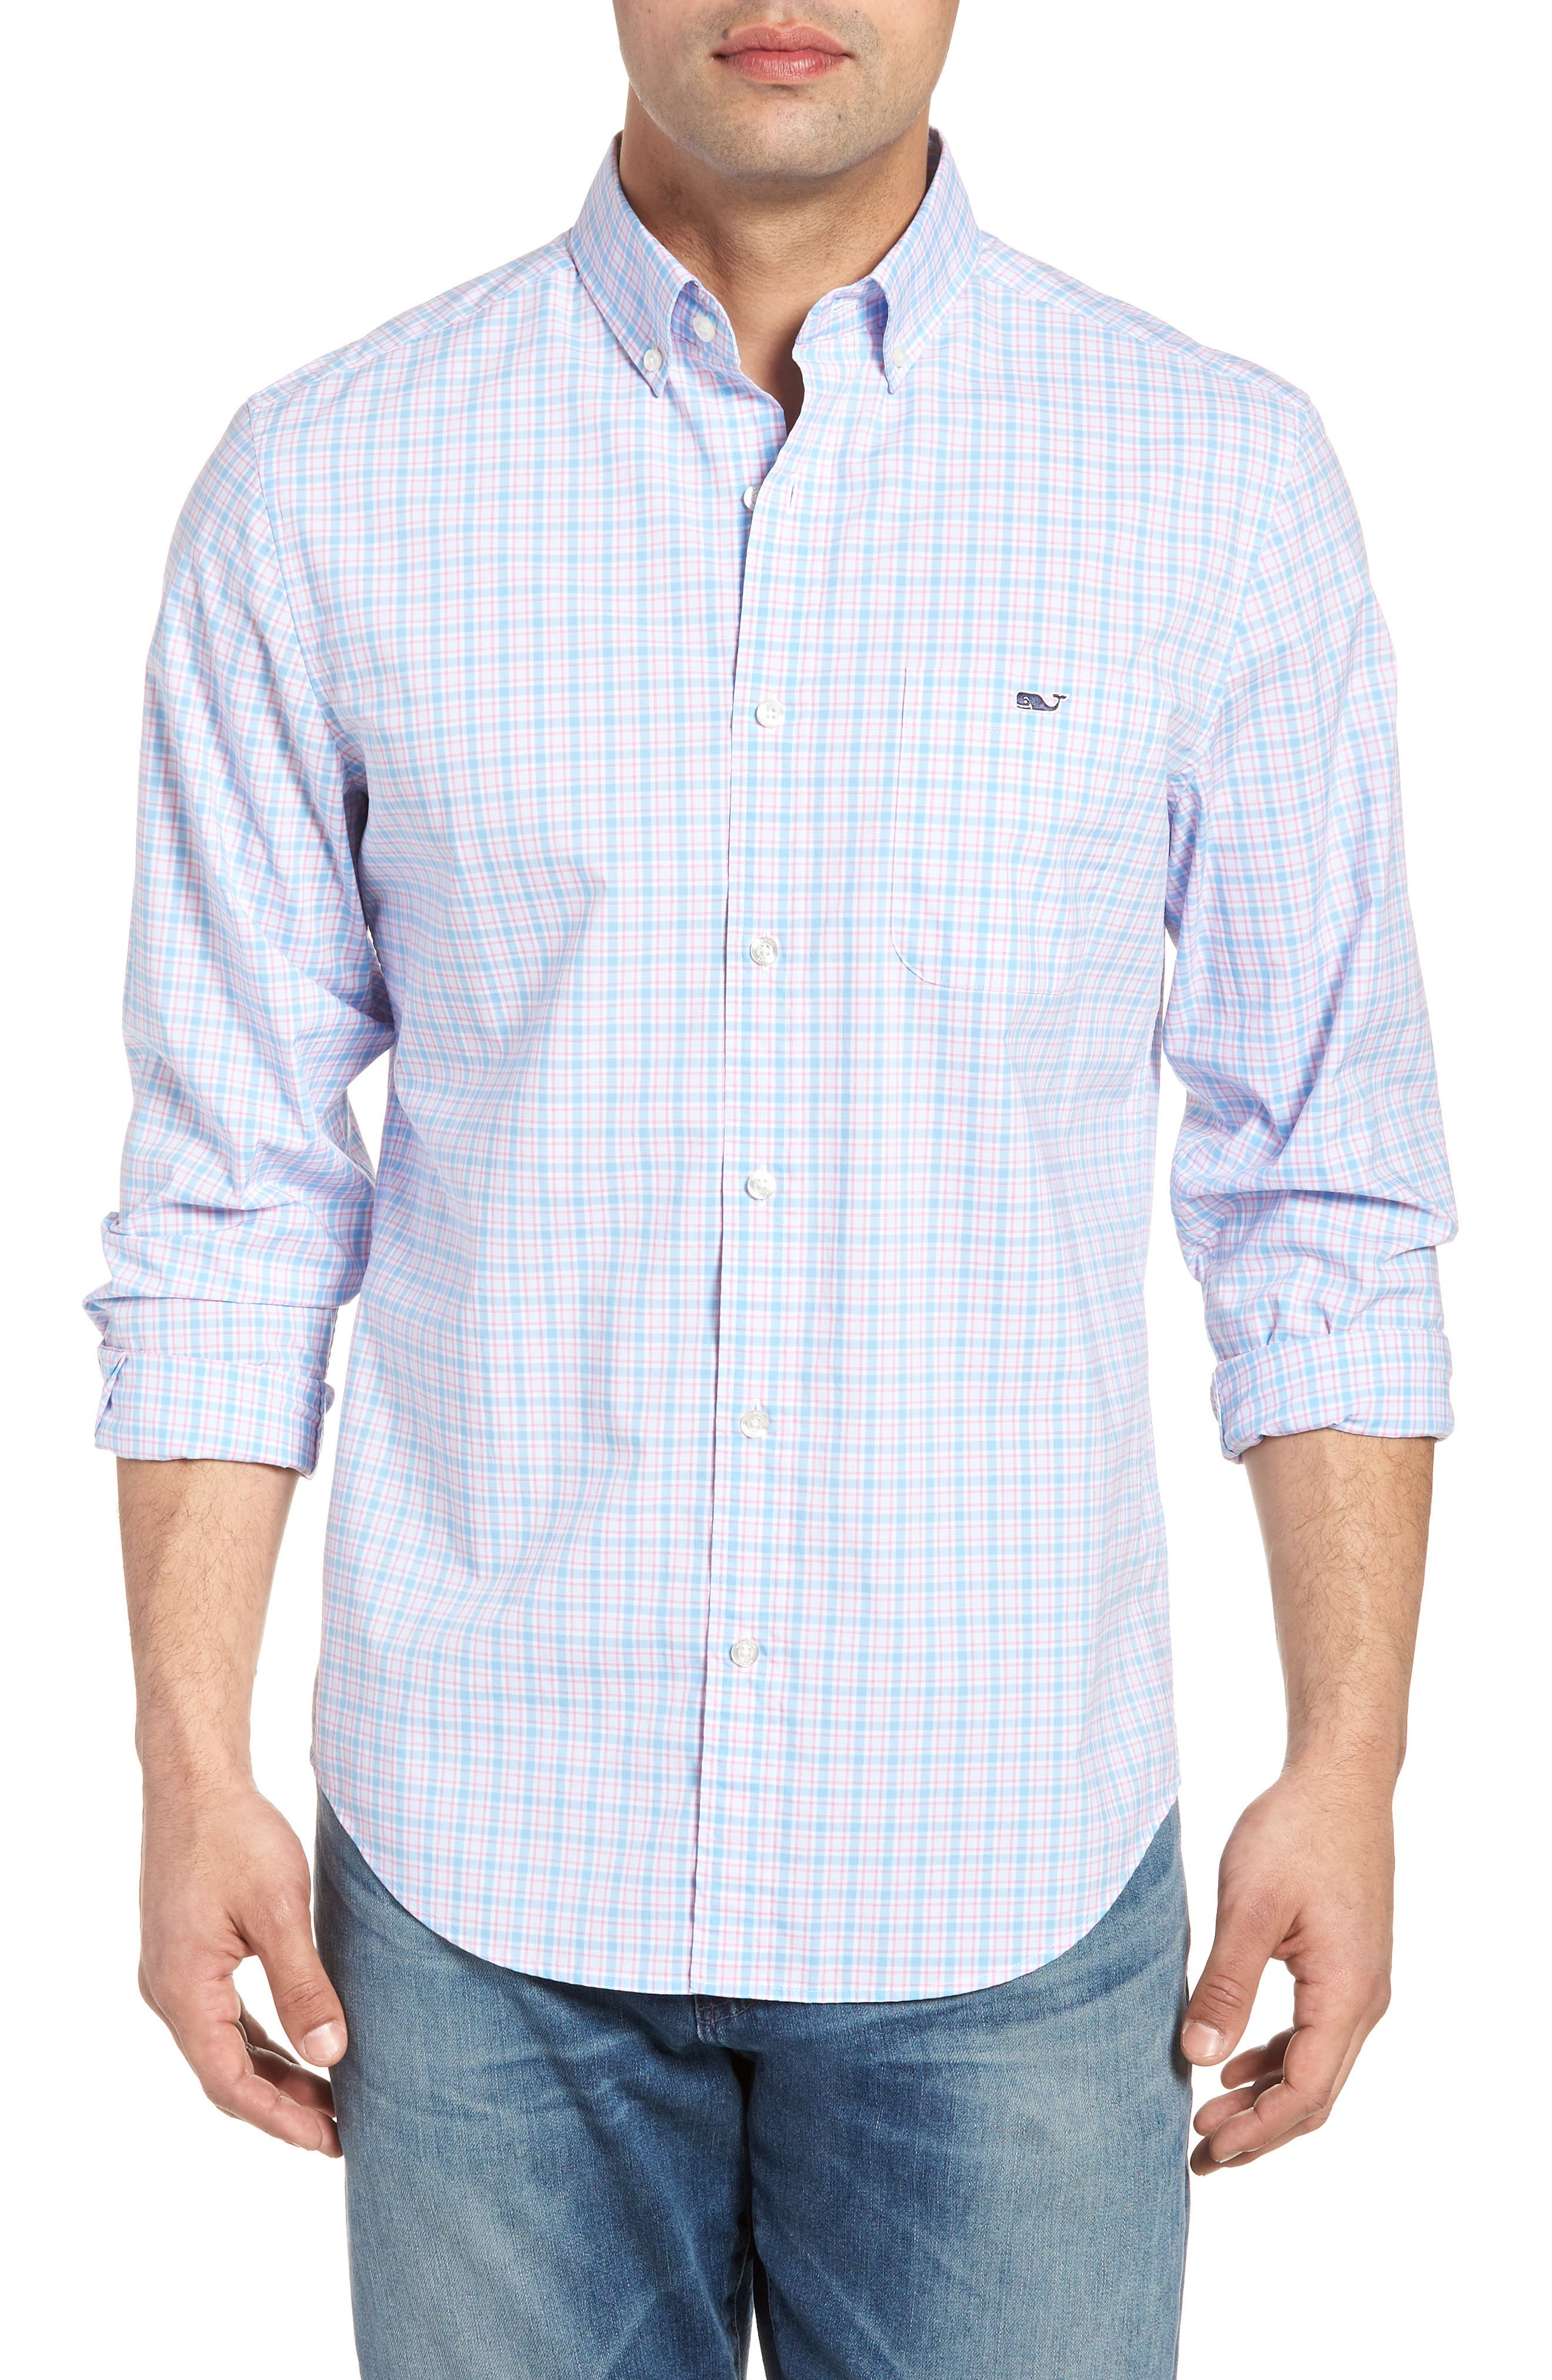 Captain Lyford Classic Fit Stretch Check Sport Shirt,                         Main,                         color, 484